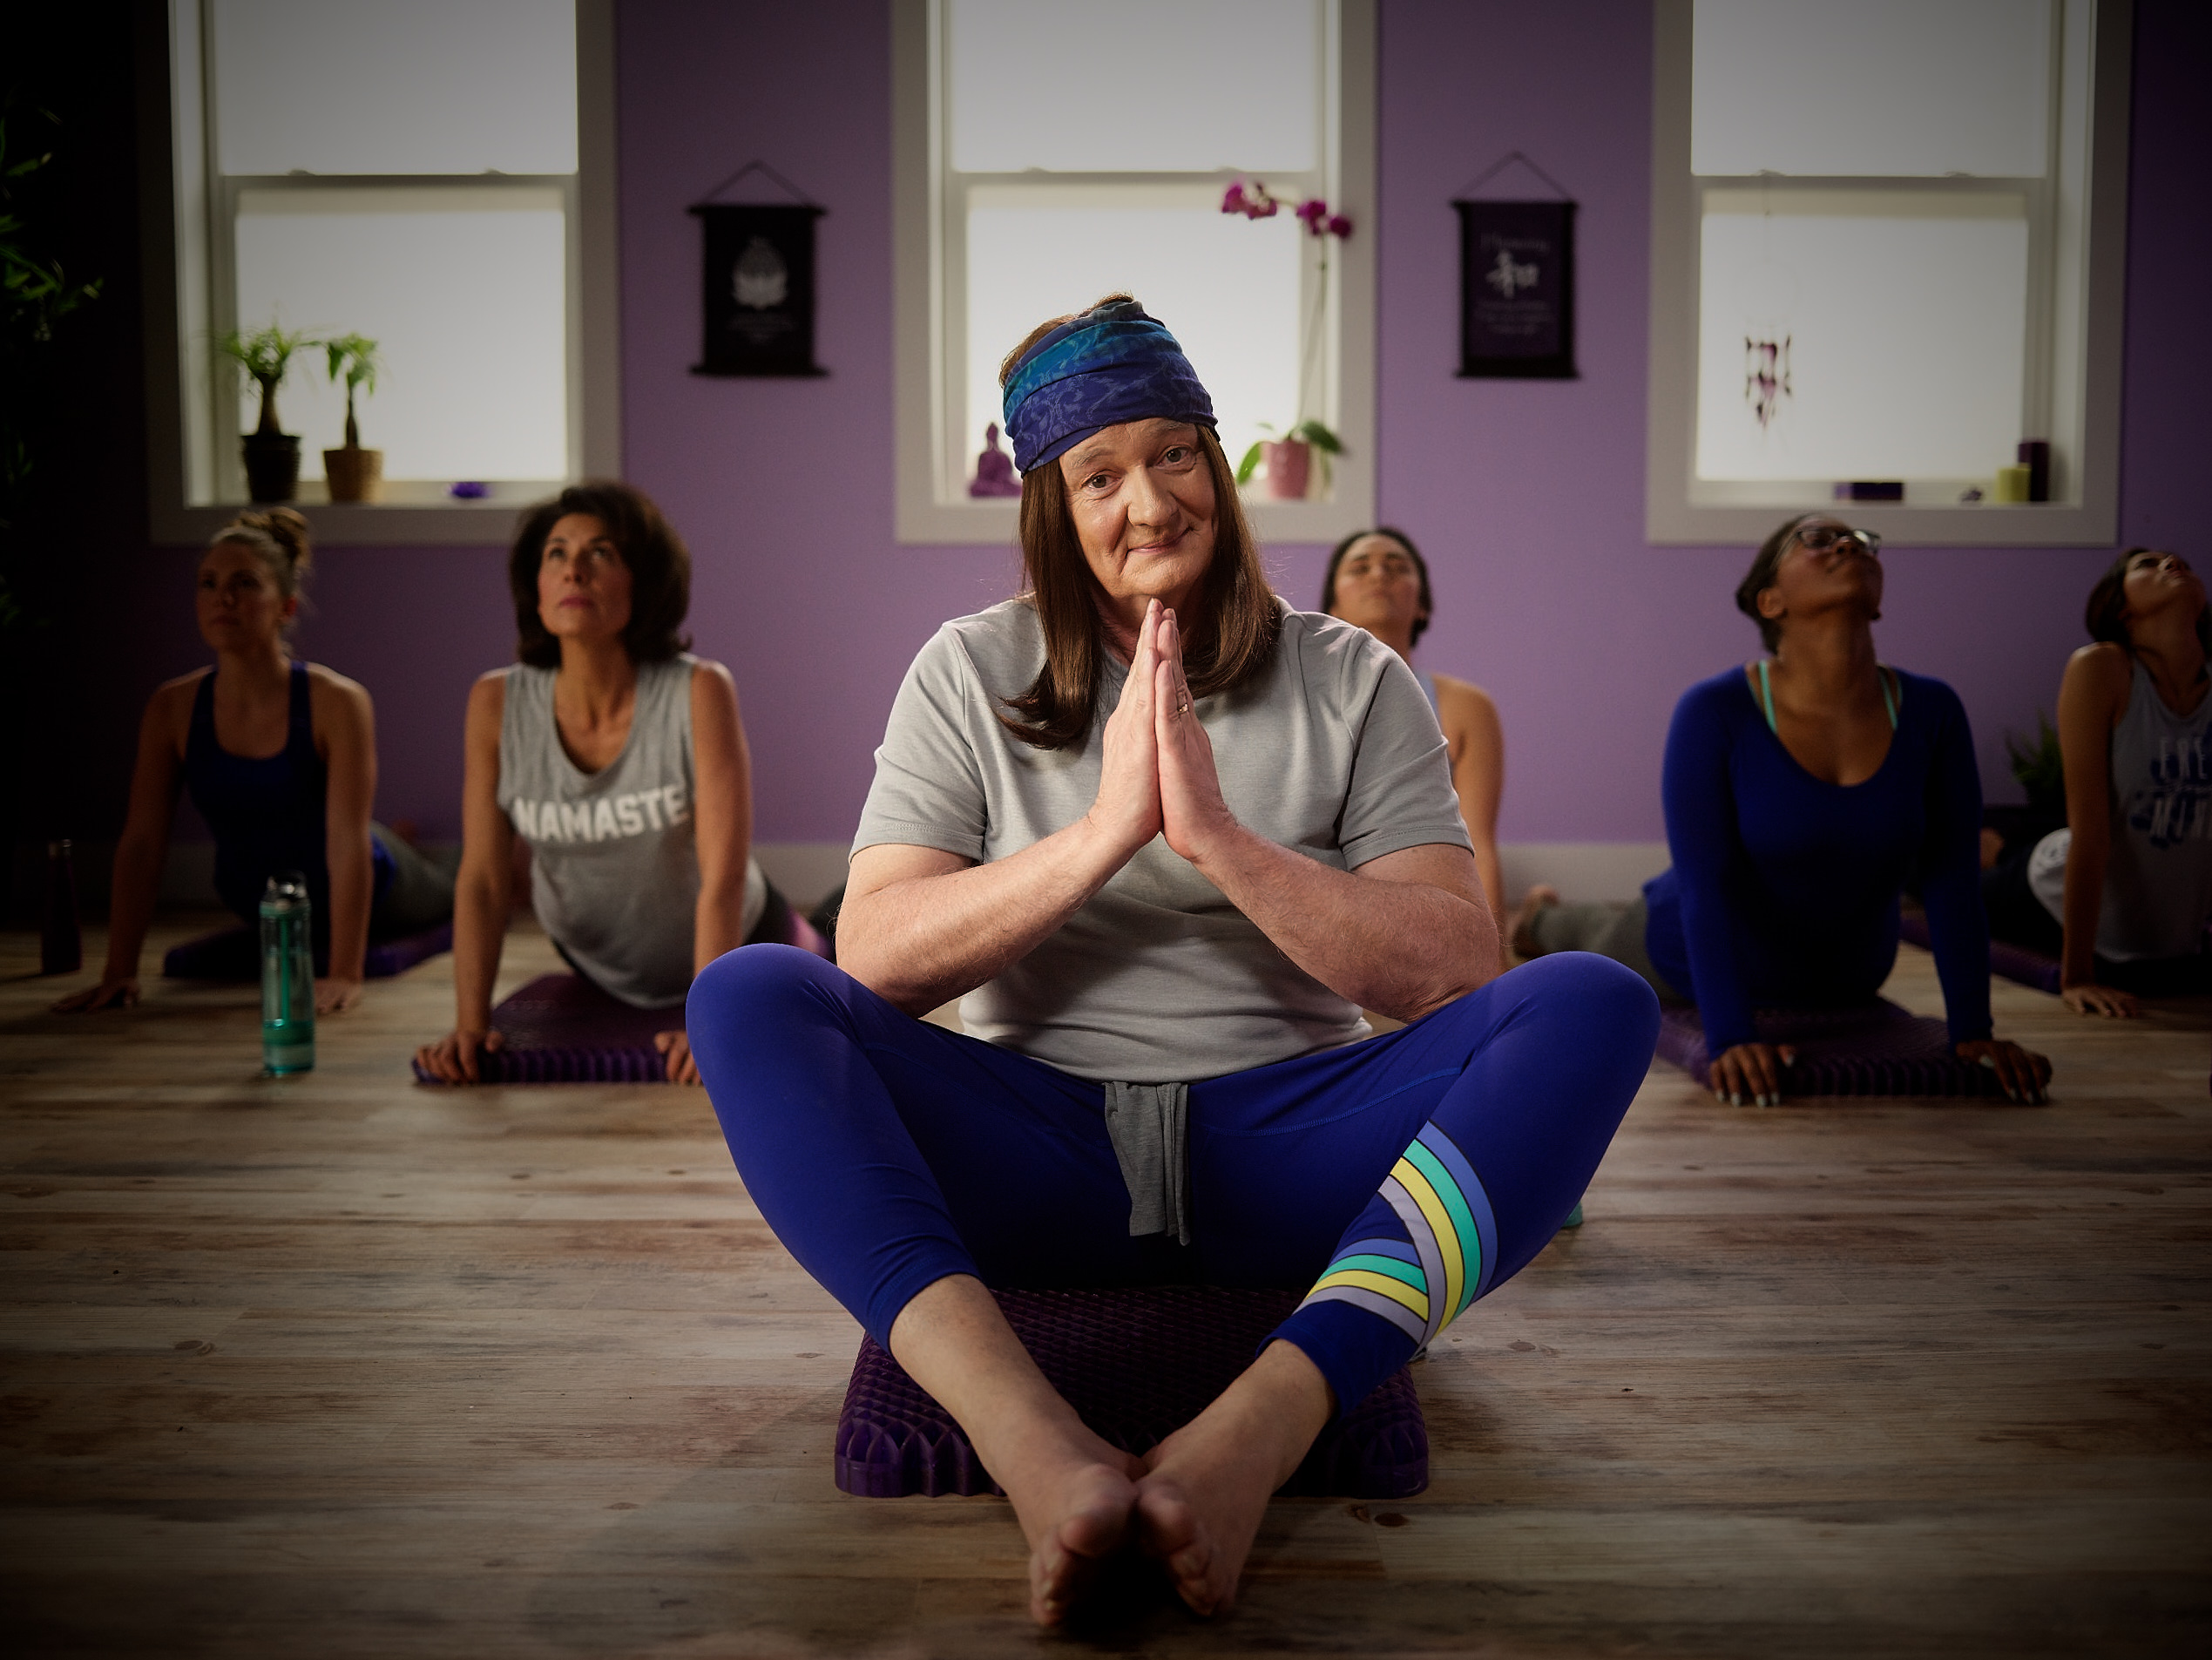 COLIN MOCHRIE AS A YOGIE DOING YOGA ON A PURPLE SEAT CUSHION